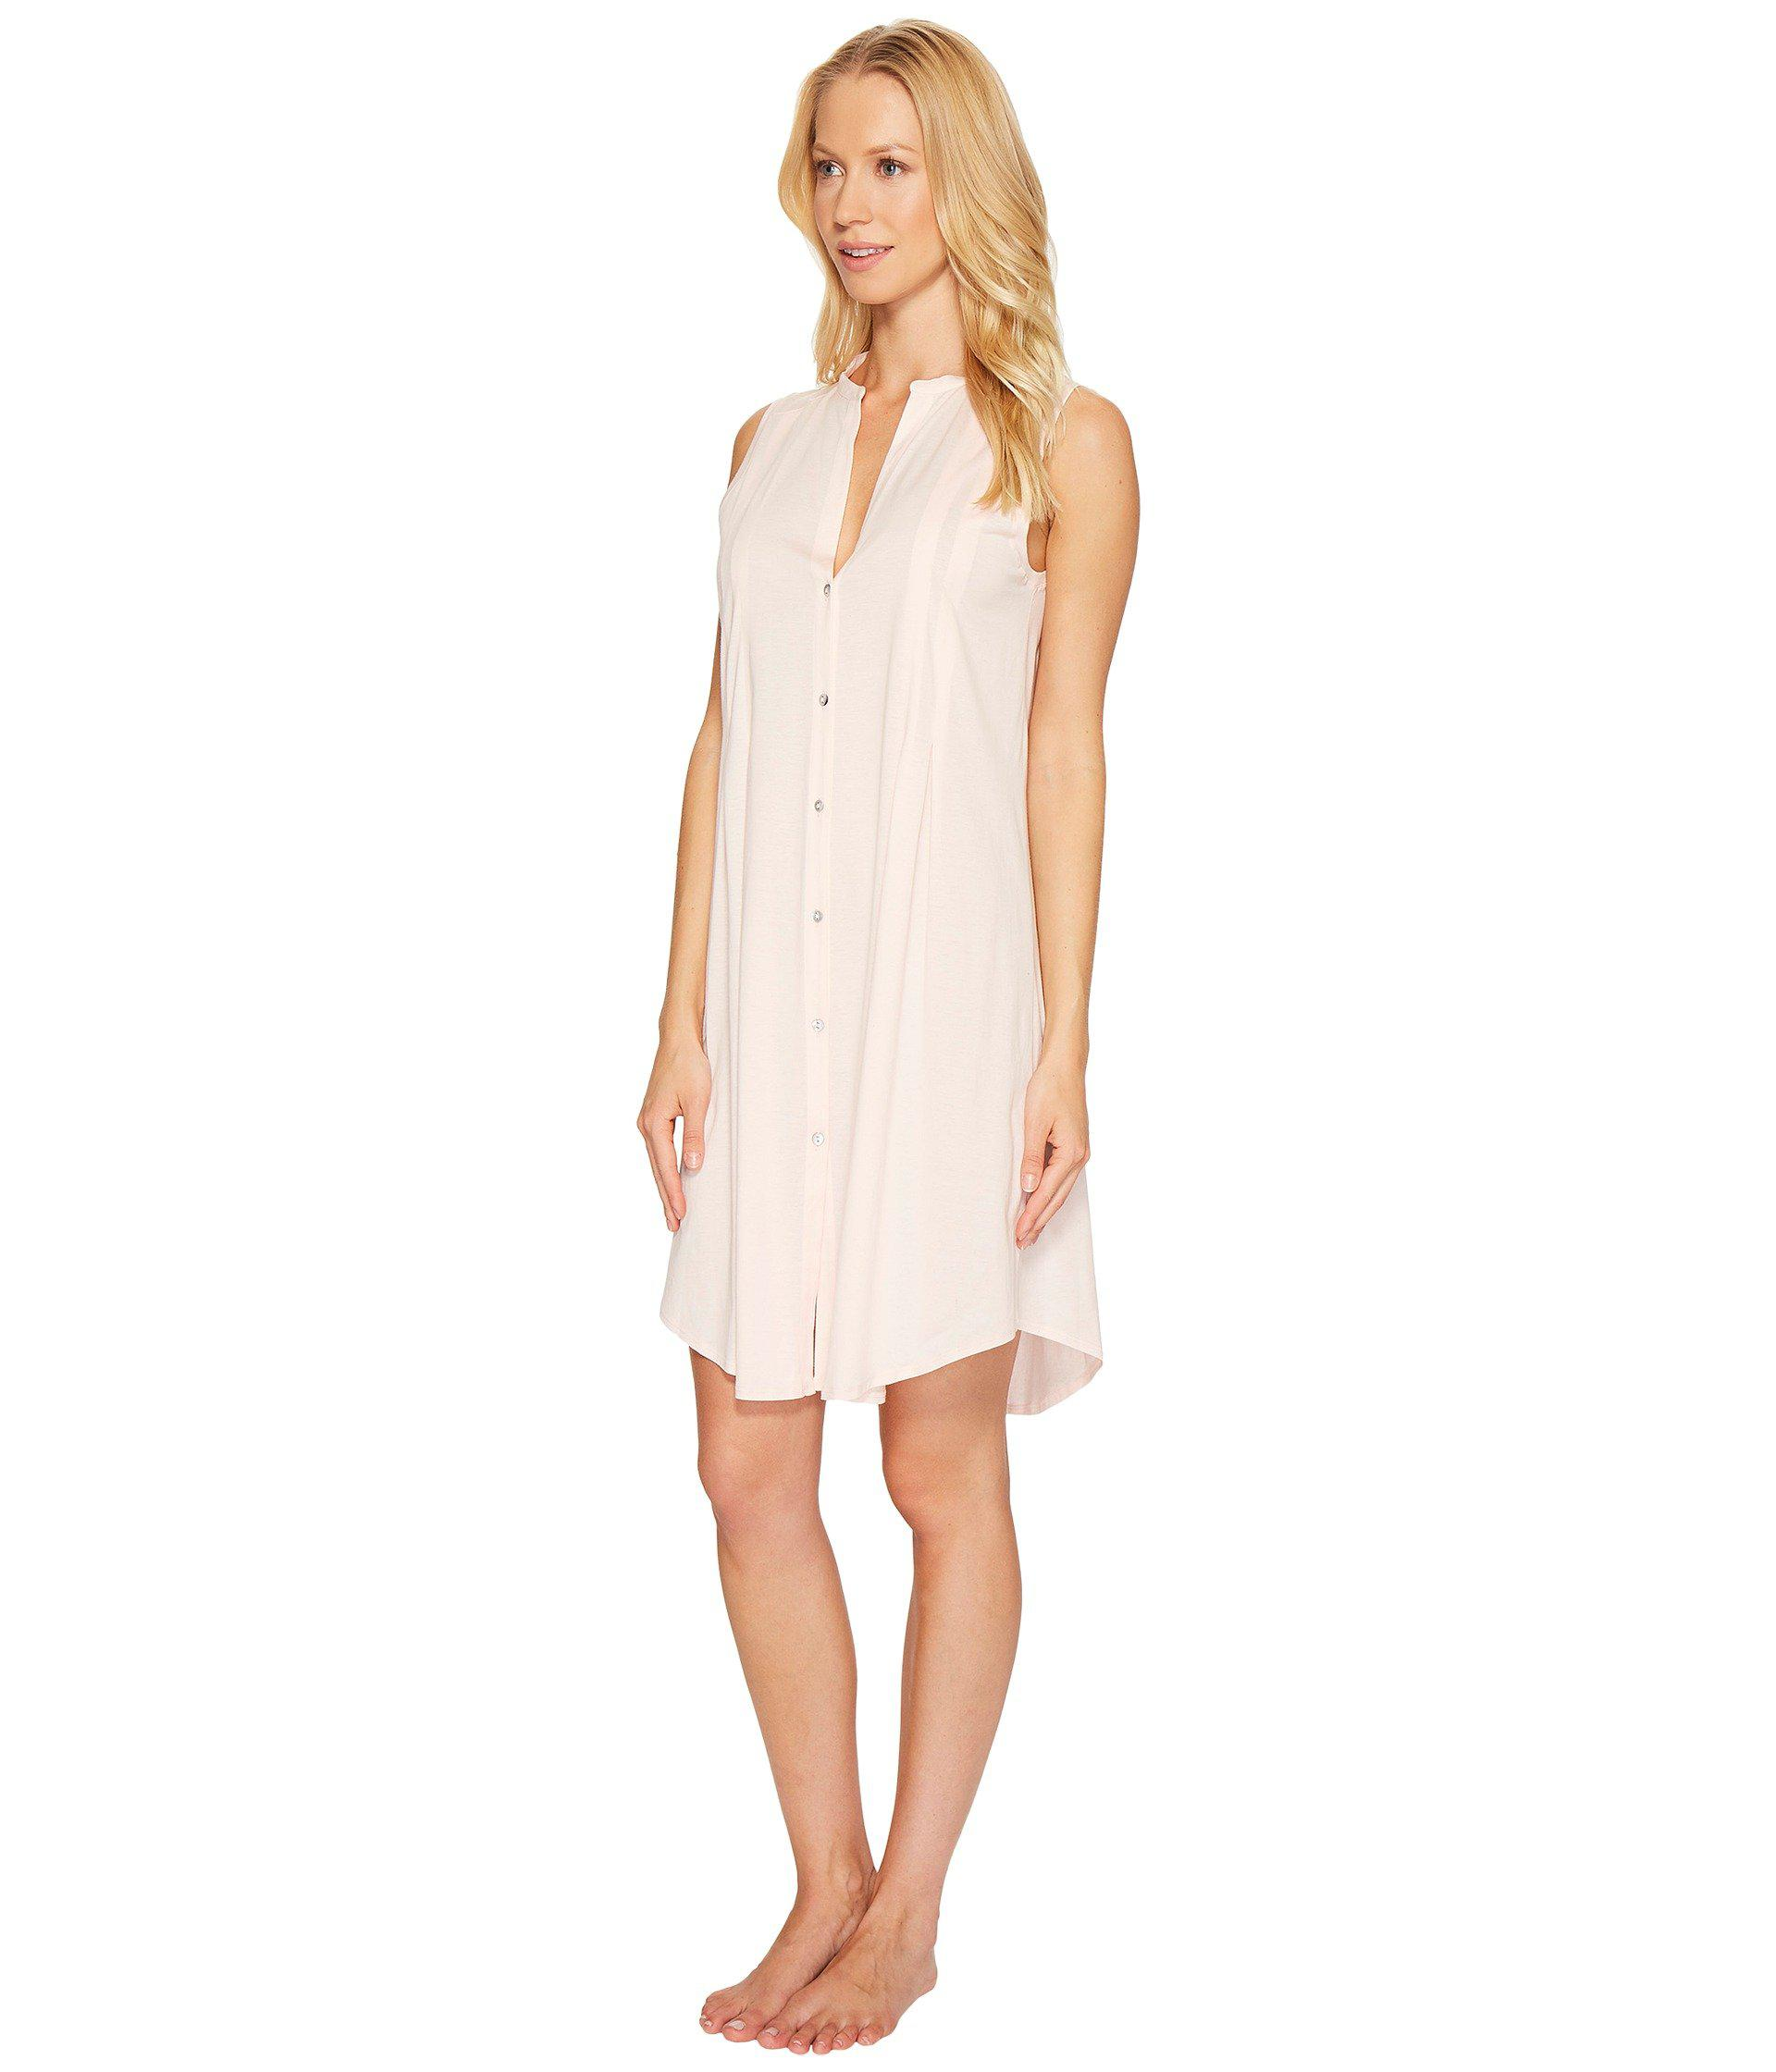 7e38f4b59d Lyst - Hanro Cotton Deluxe Button Front Tank Nightgown (tender Rose)  Women s Pajama in Pink